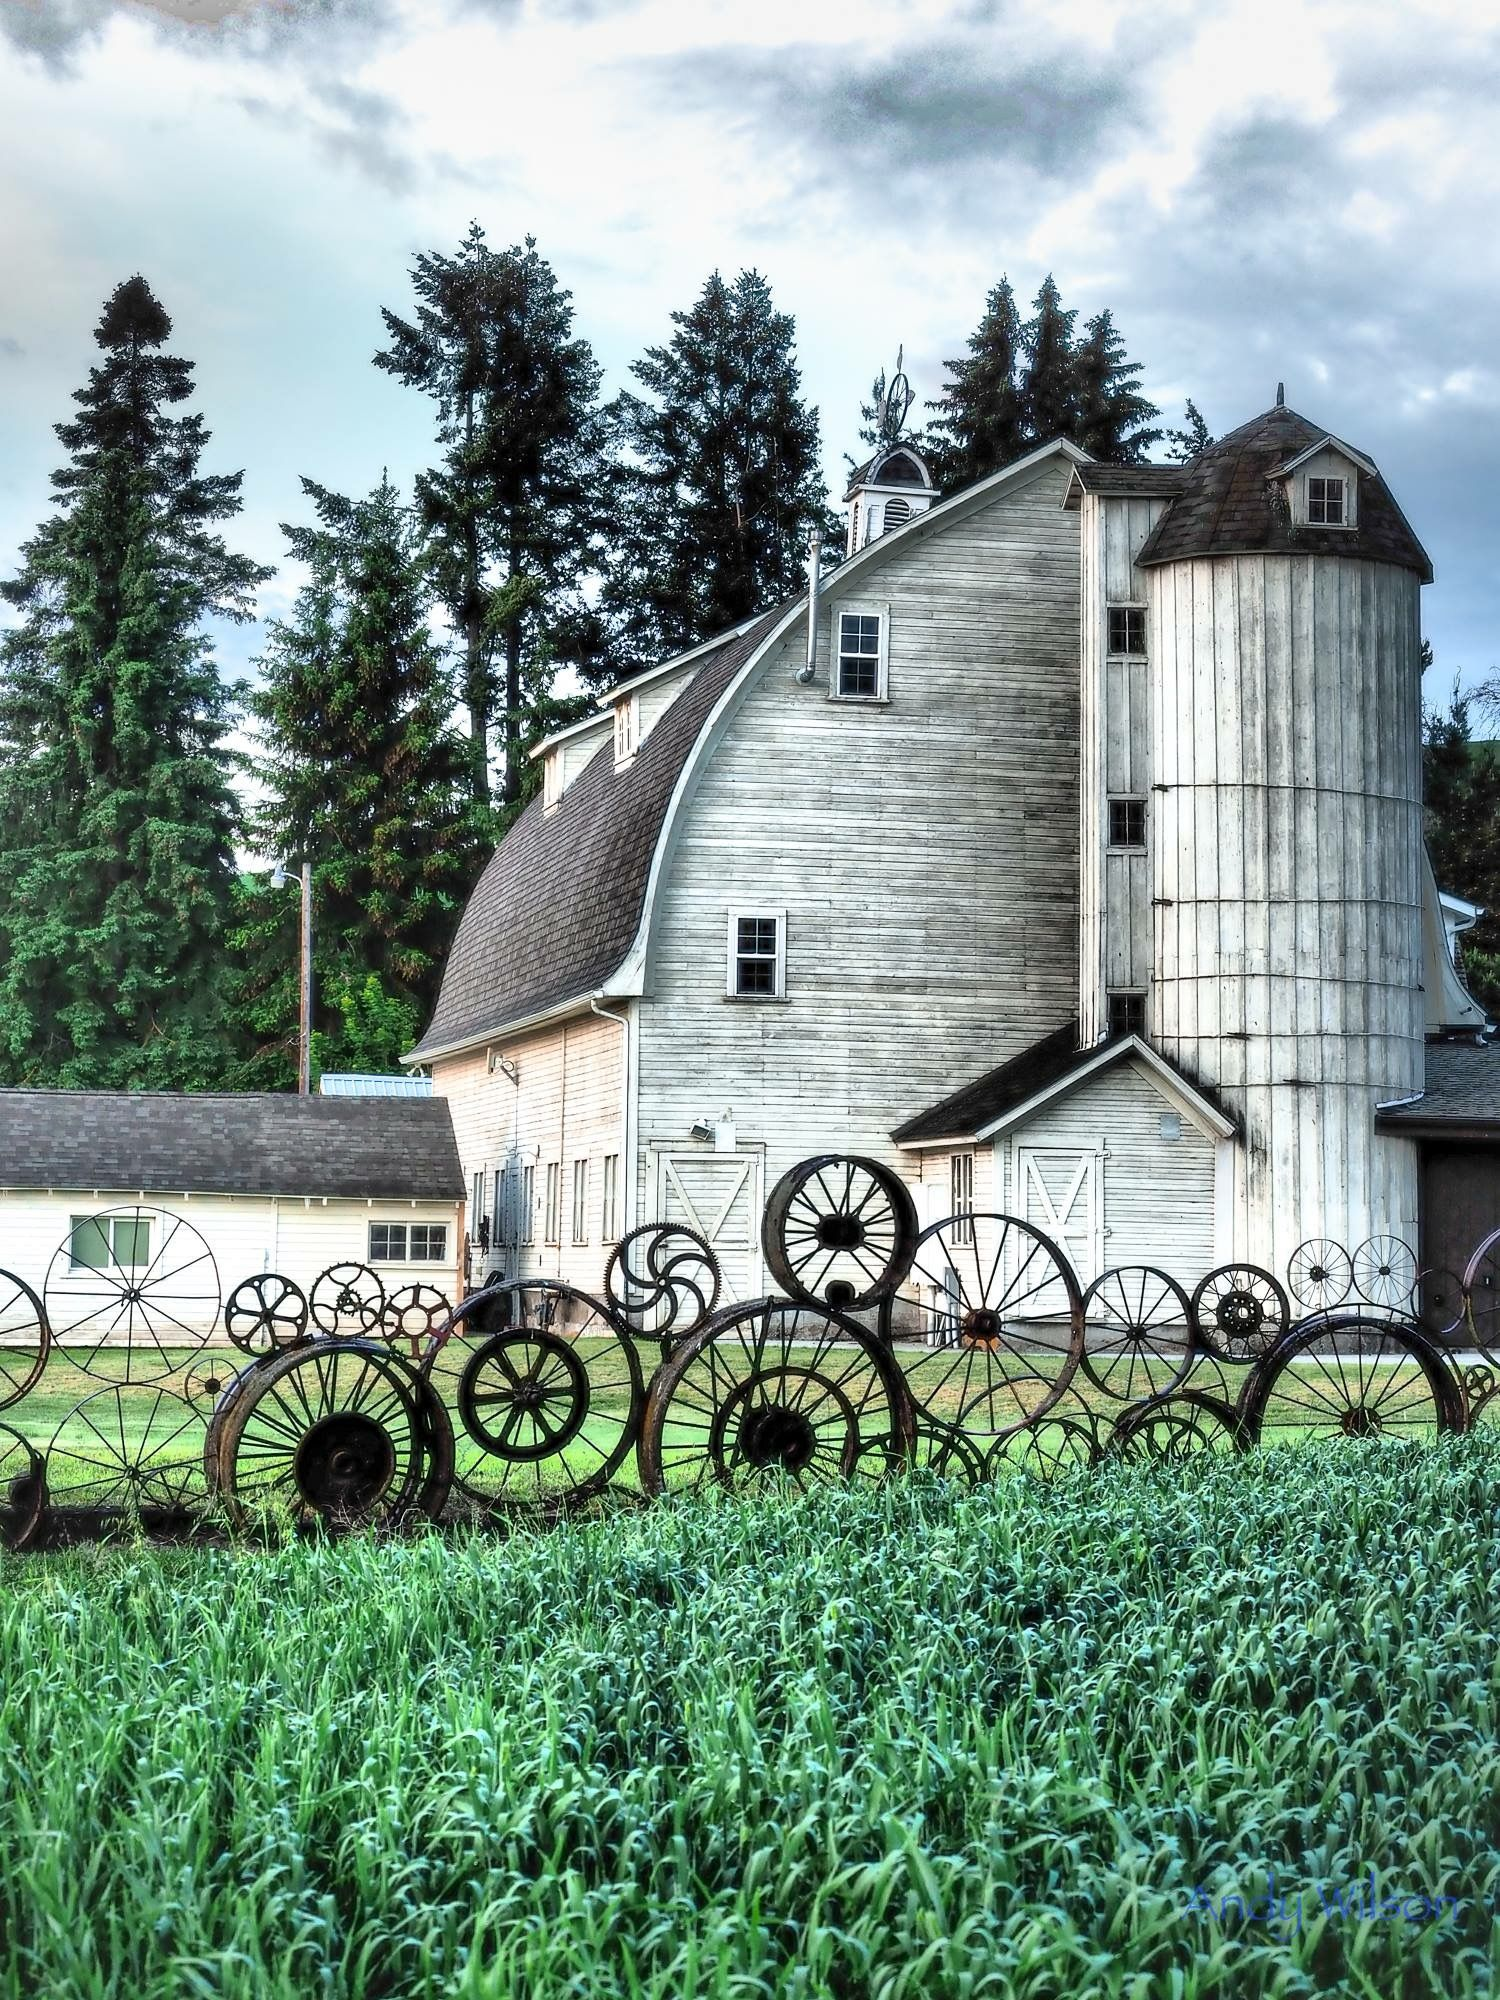 old white barn in pullman wa the fence is made out of old machinery wheels sprockets and gears barn pictures rustic barn old barns pinterest